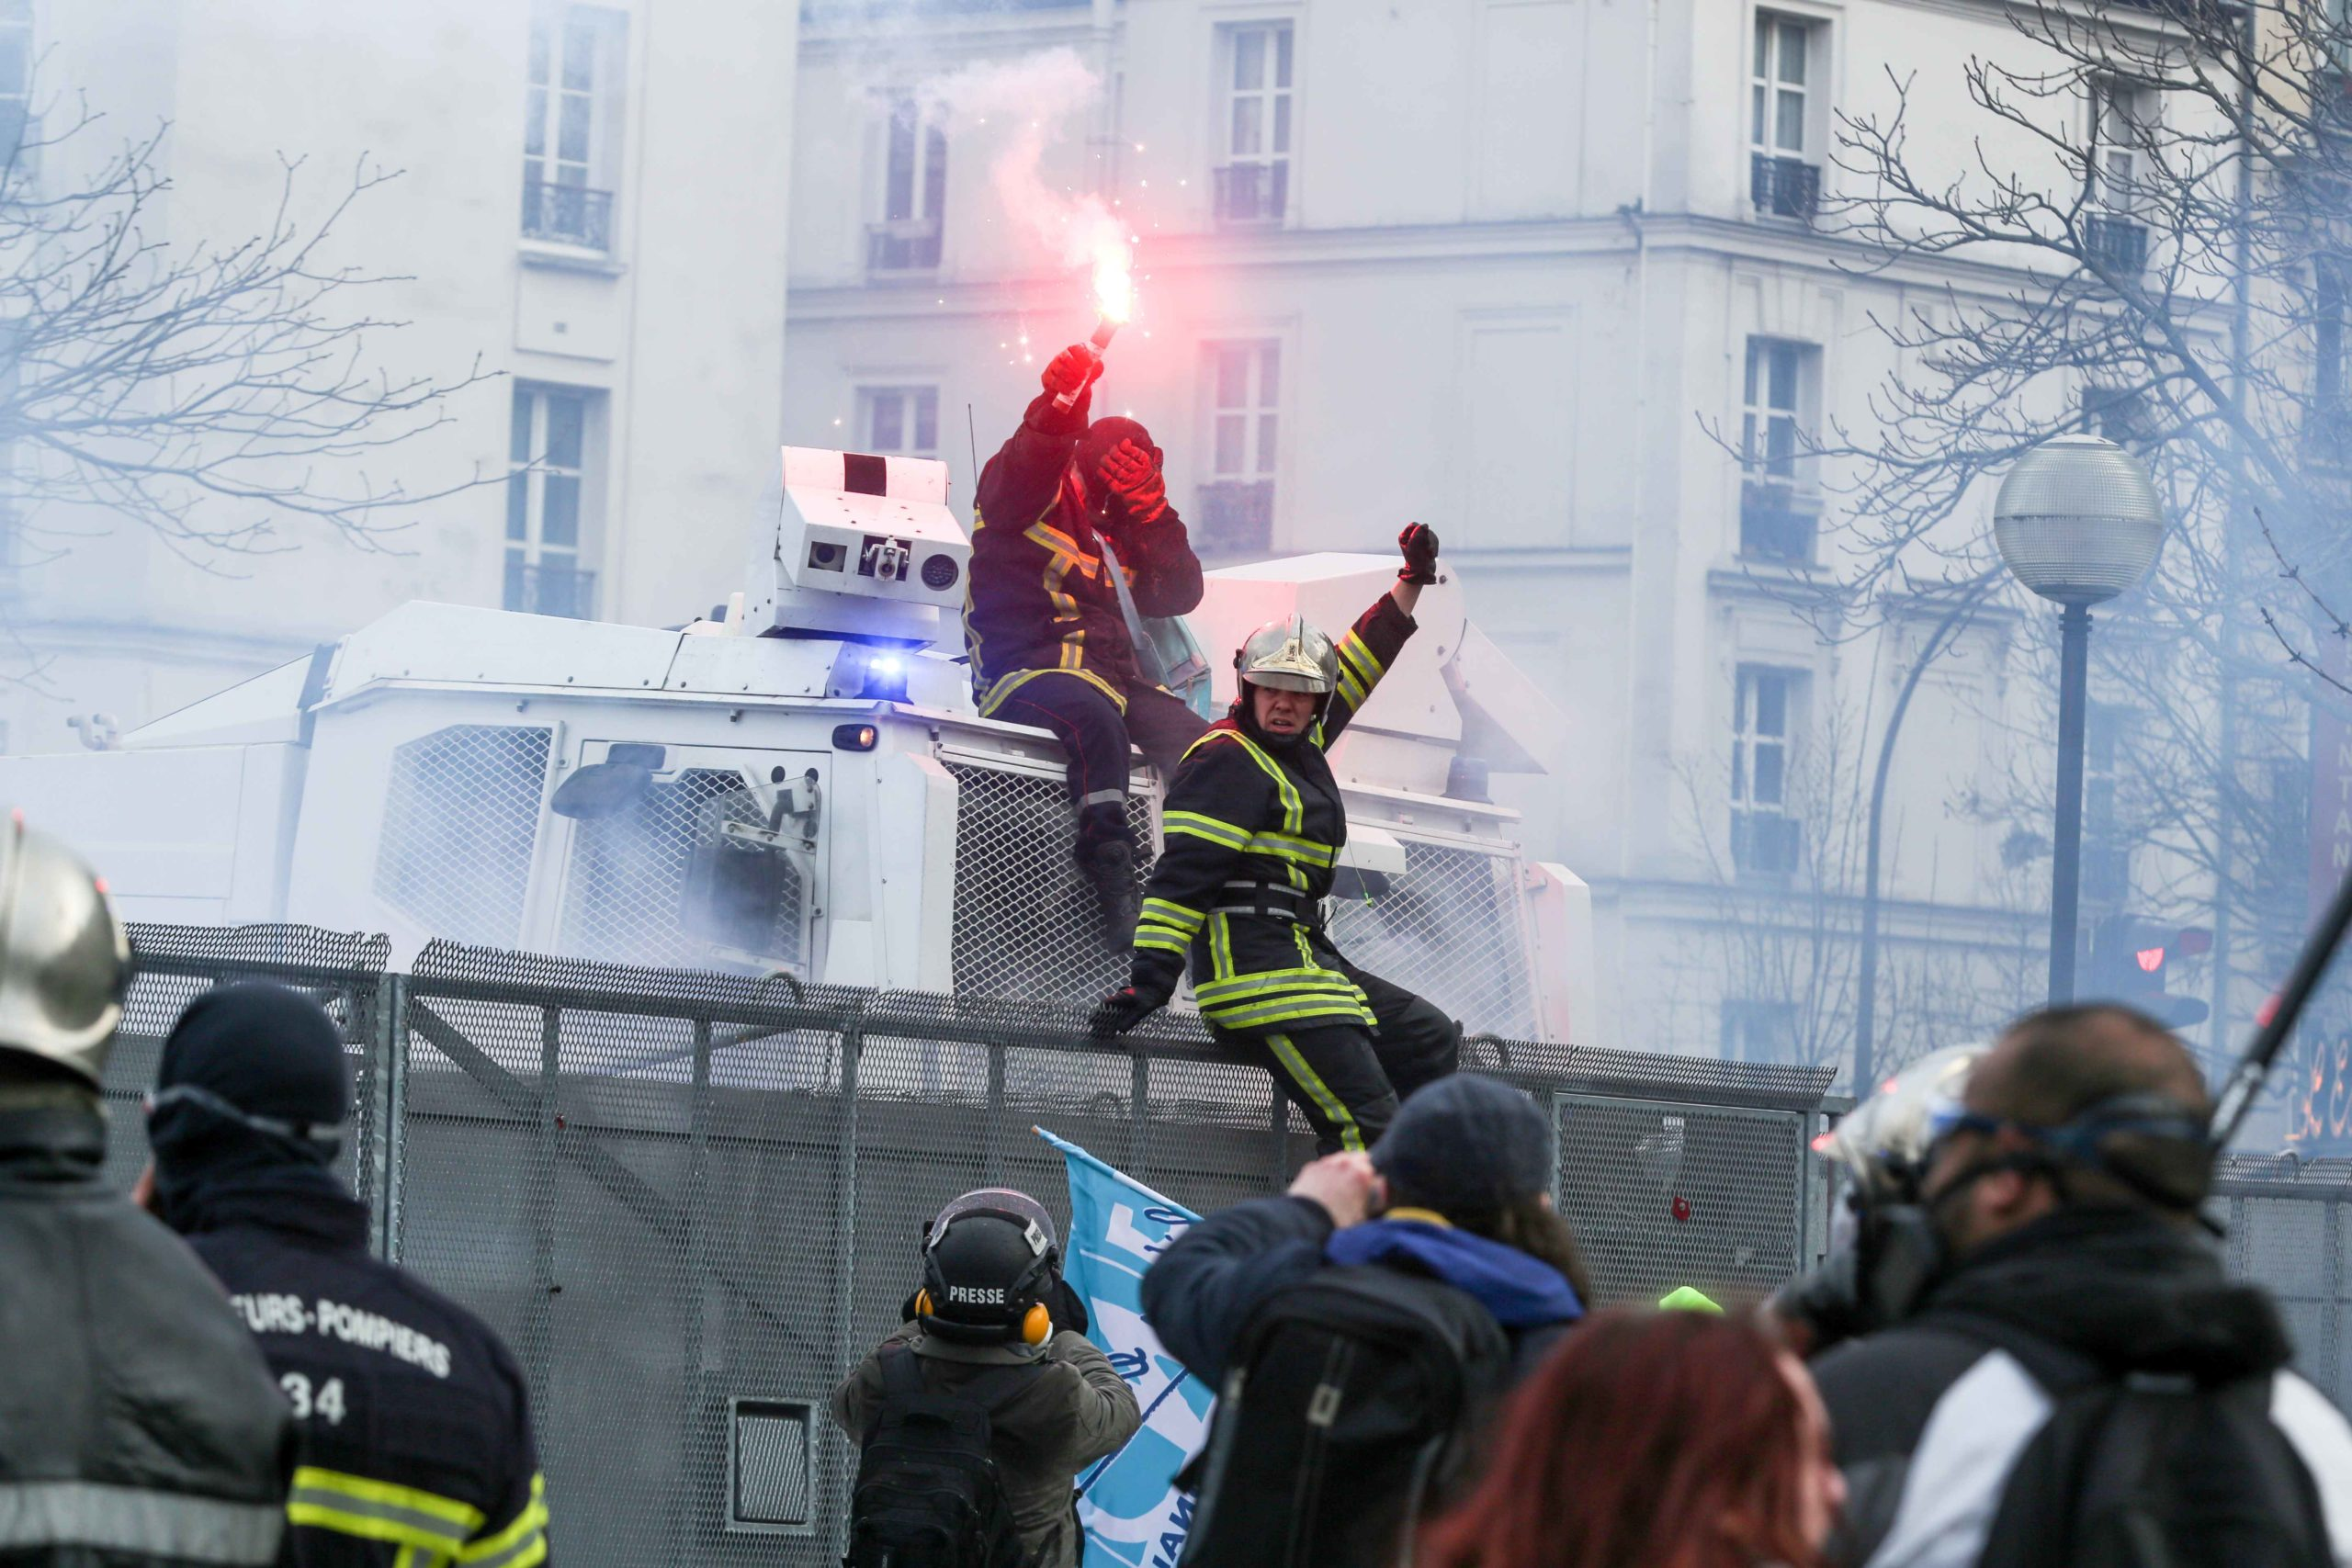 Two firefighters manage to ride a water canon during a demonstration to protest against French government's plan to overhaul the country's retirement system in Paris, on January 28, 2020.